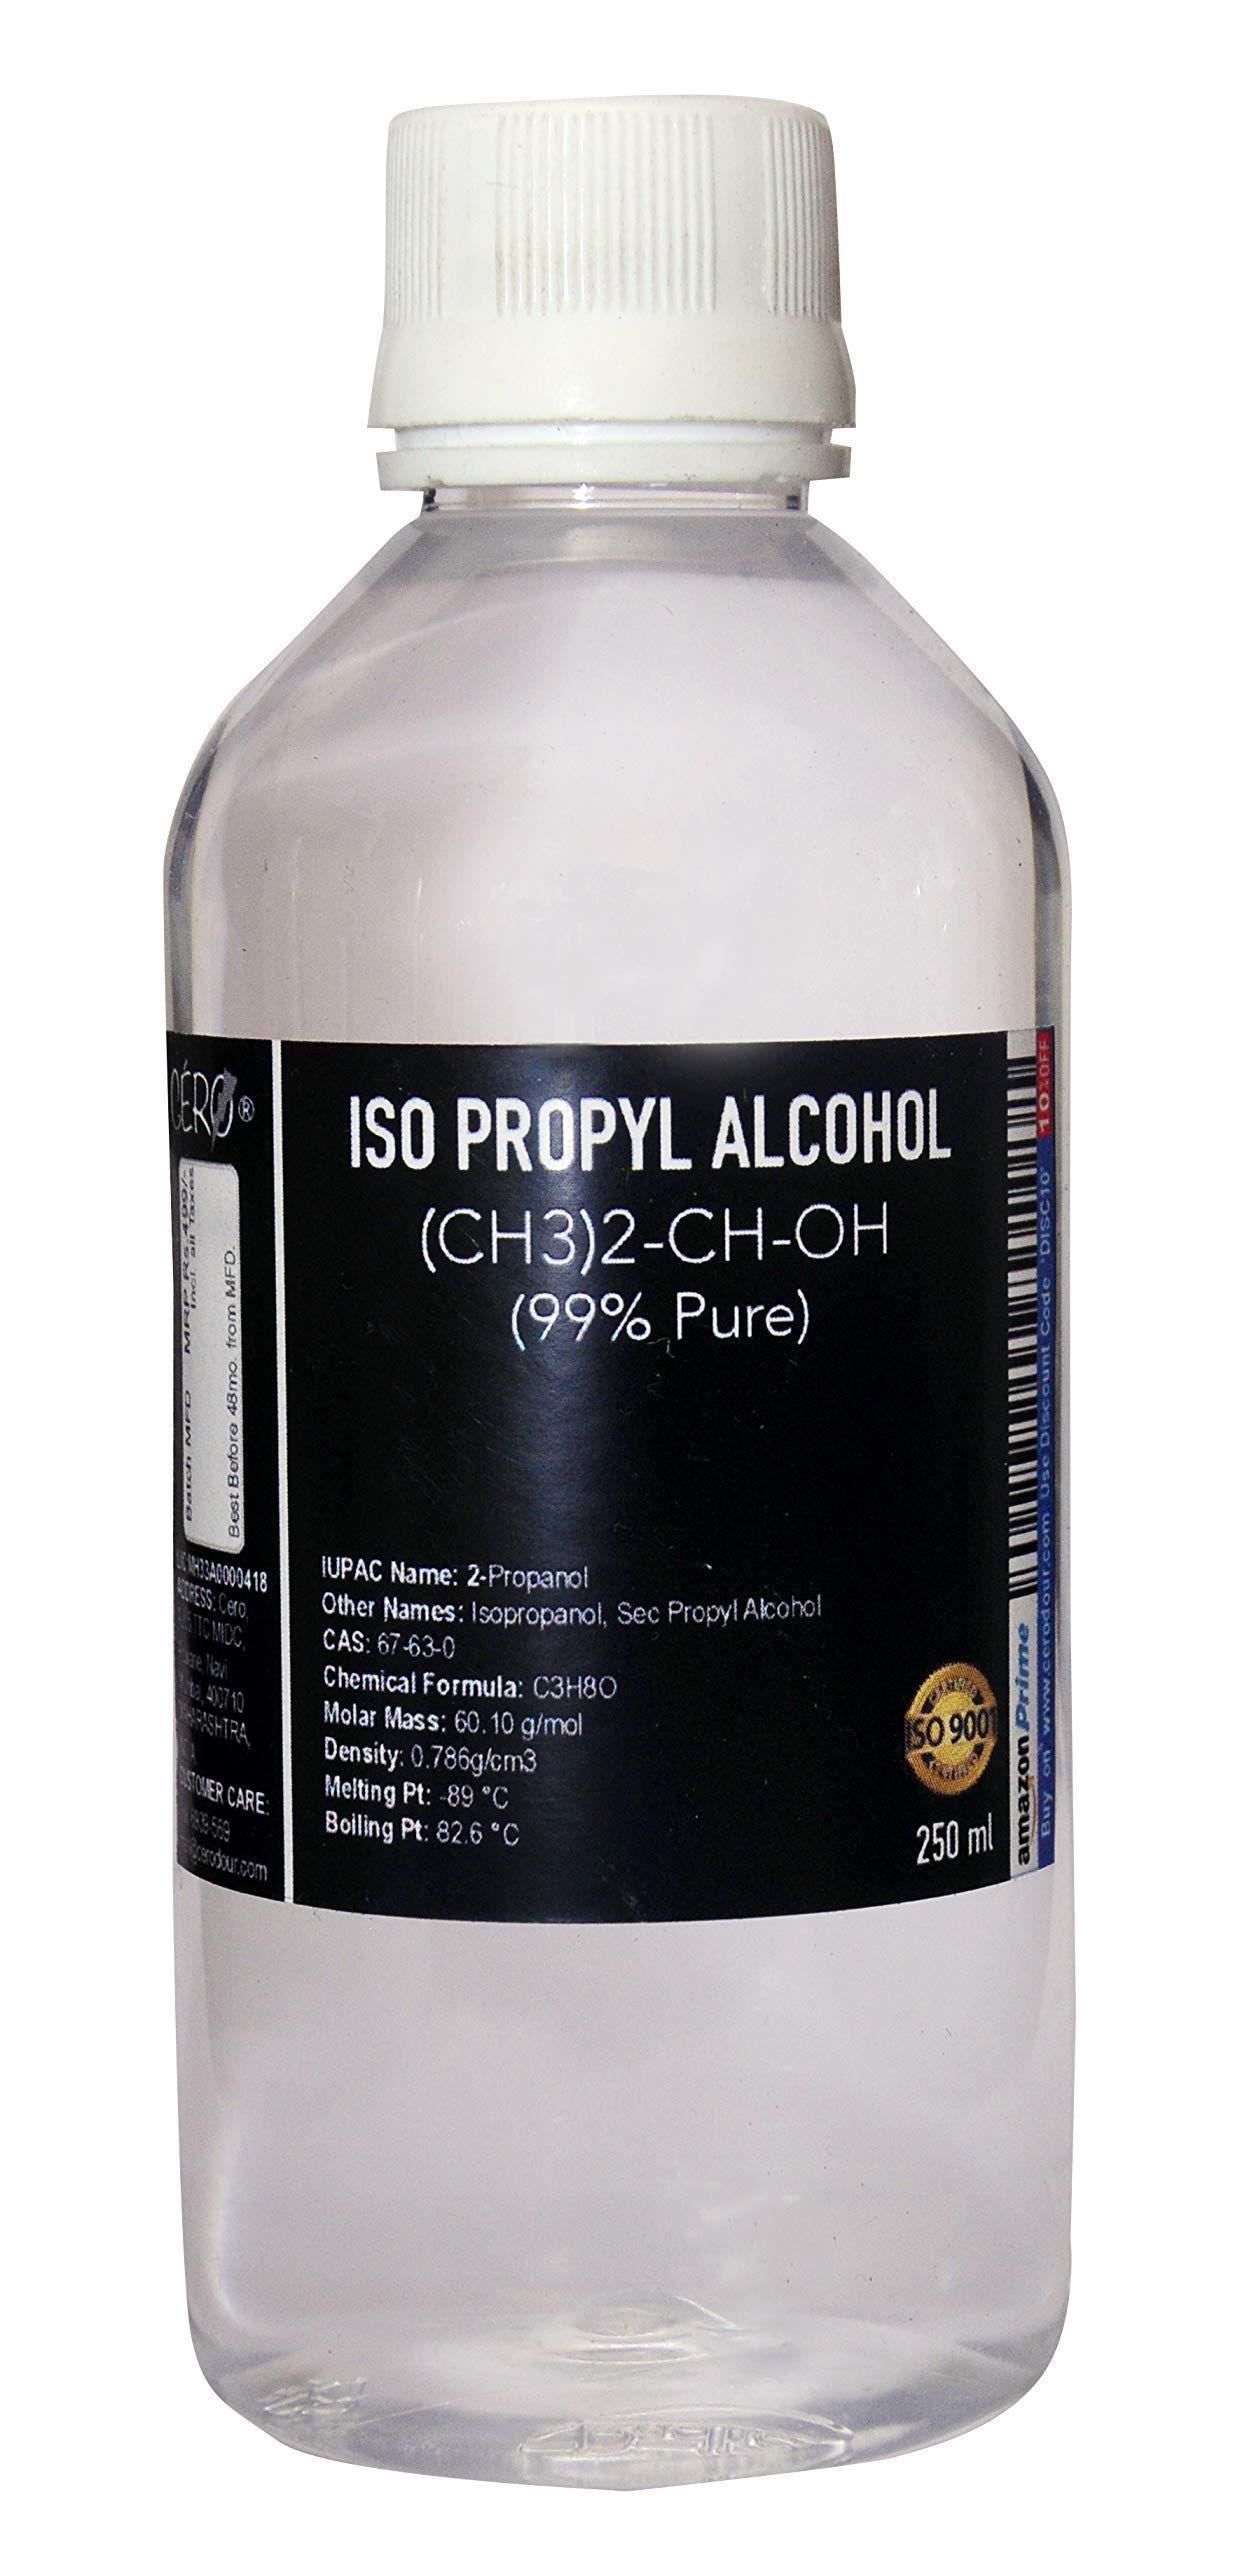 Cero Iso Propyl Alcohol 99 Percent Pure [(Ch3)2-Ch-Oh] Cas: 67-63-0 (250ml) by CERO